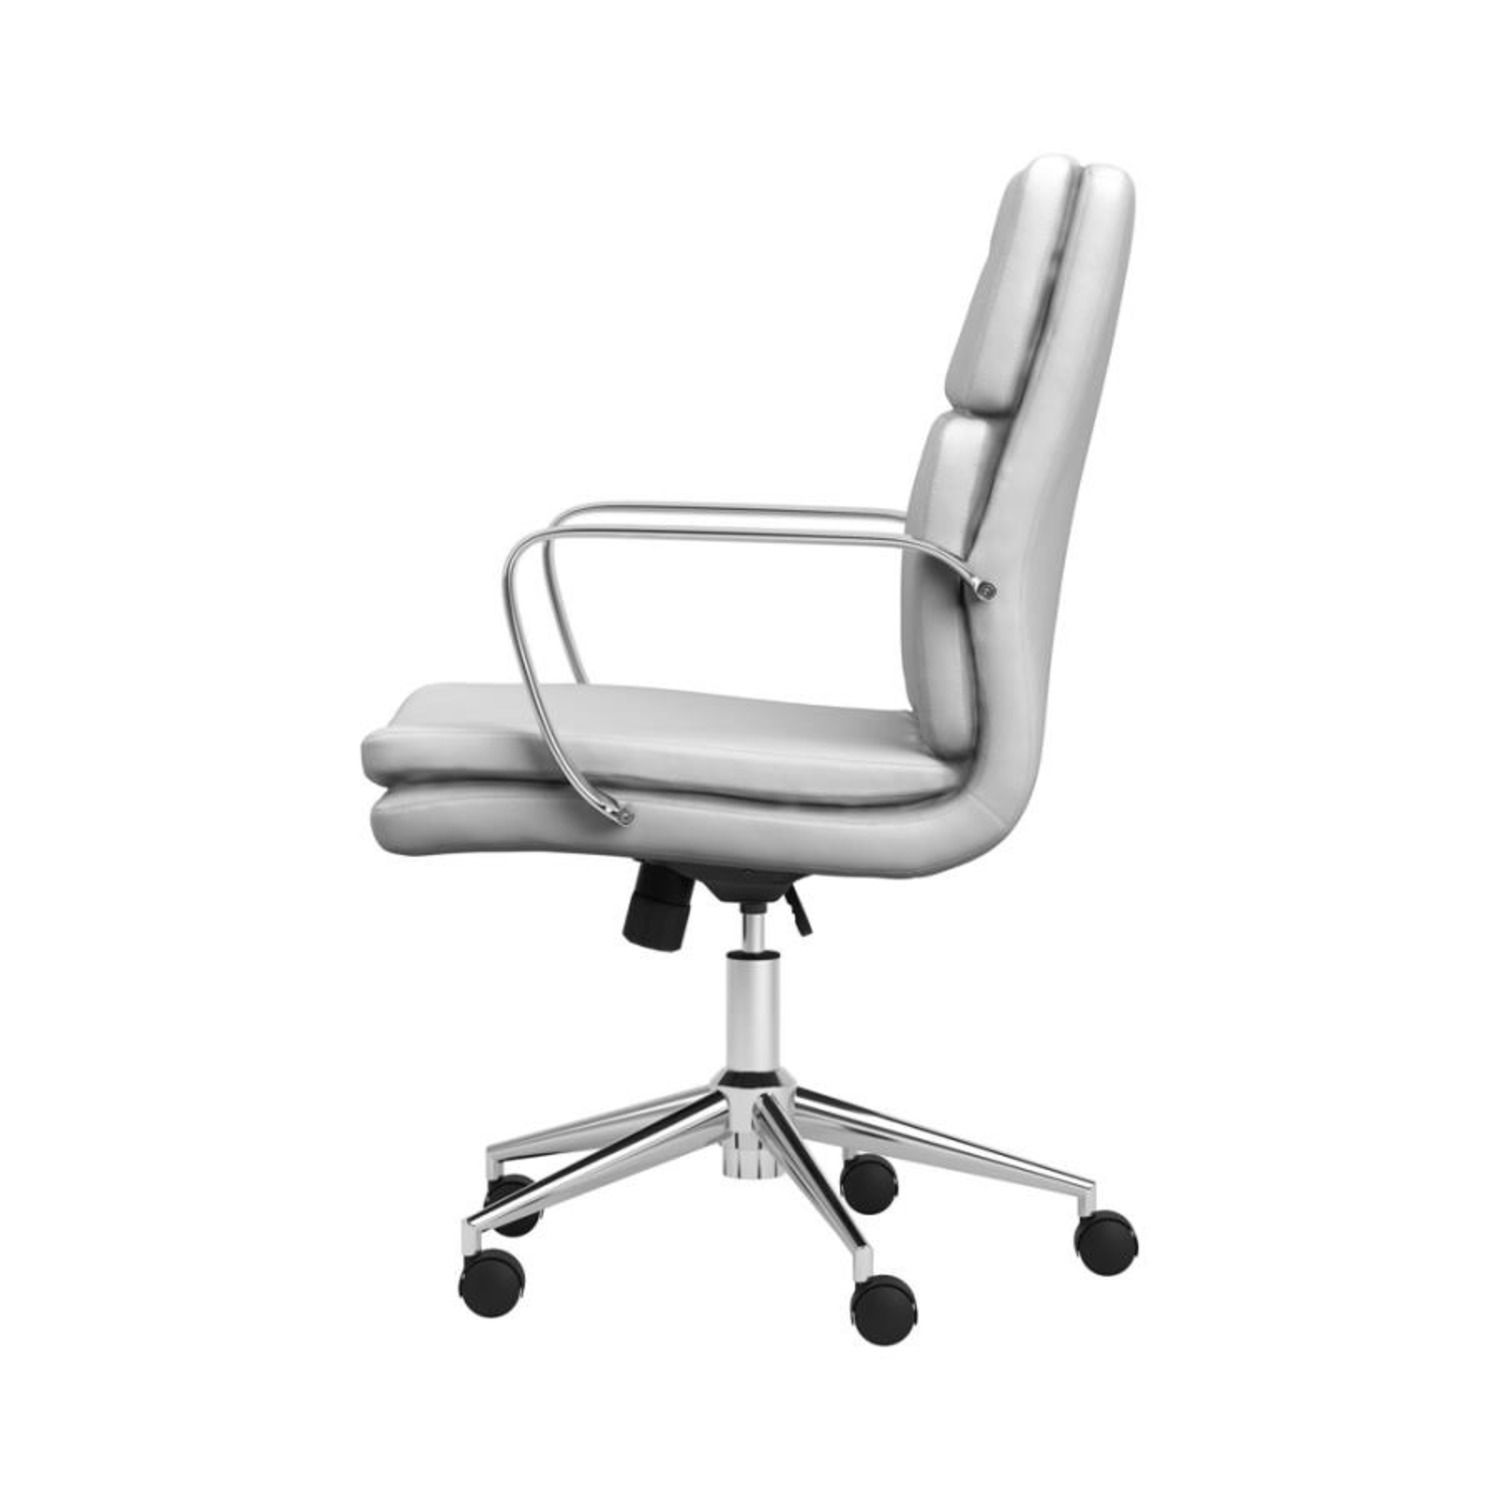 Office Chair In White Leatherette & Chrome Finish - image-2